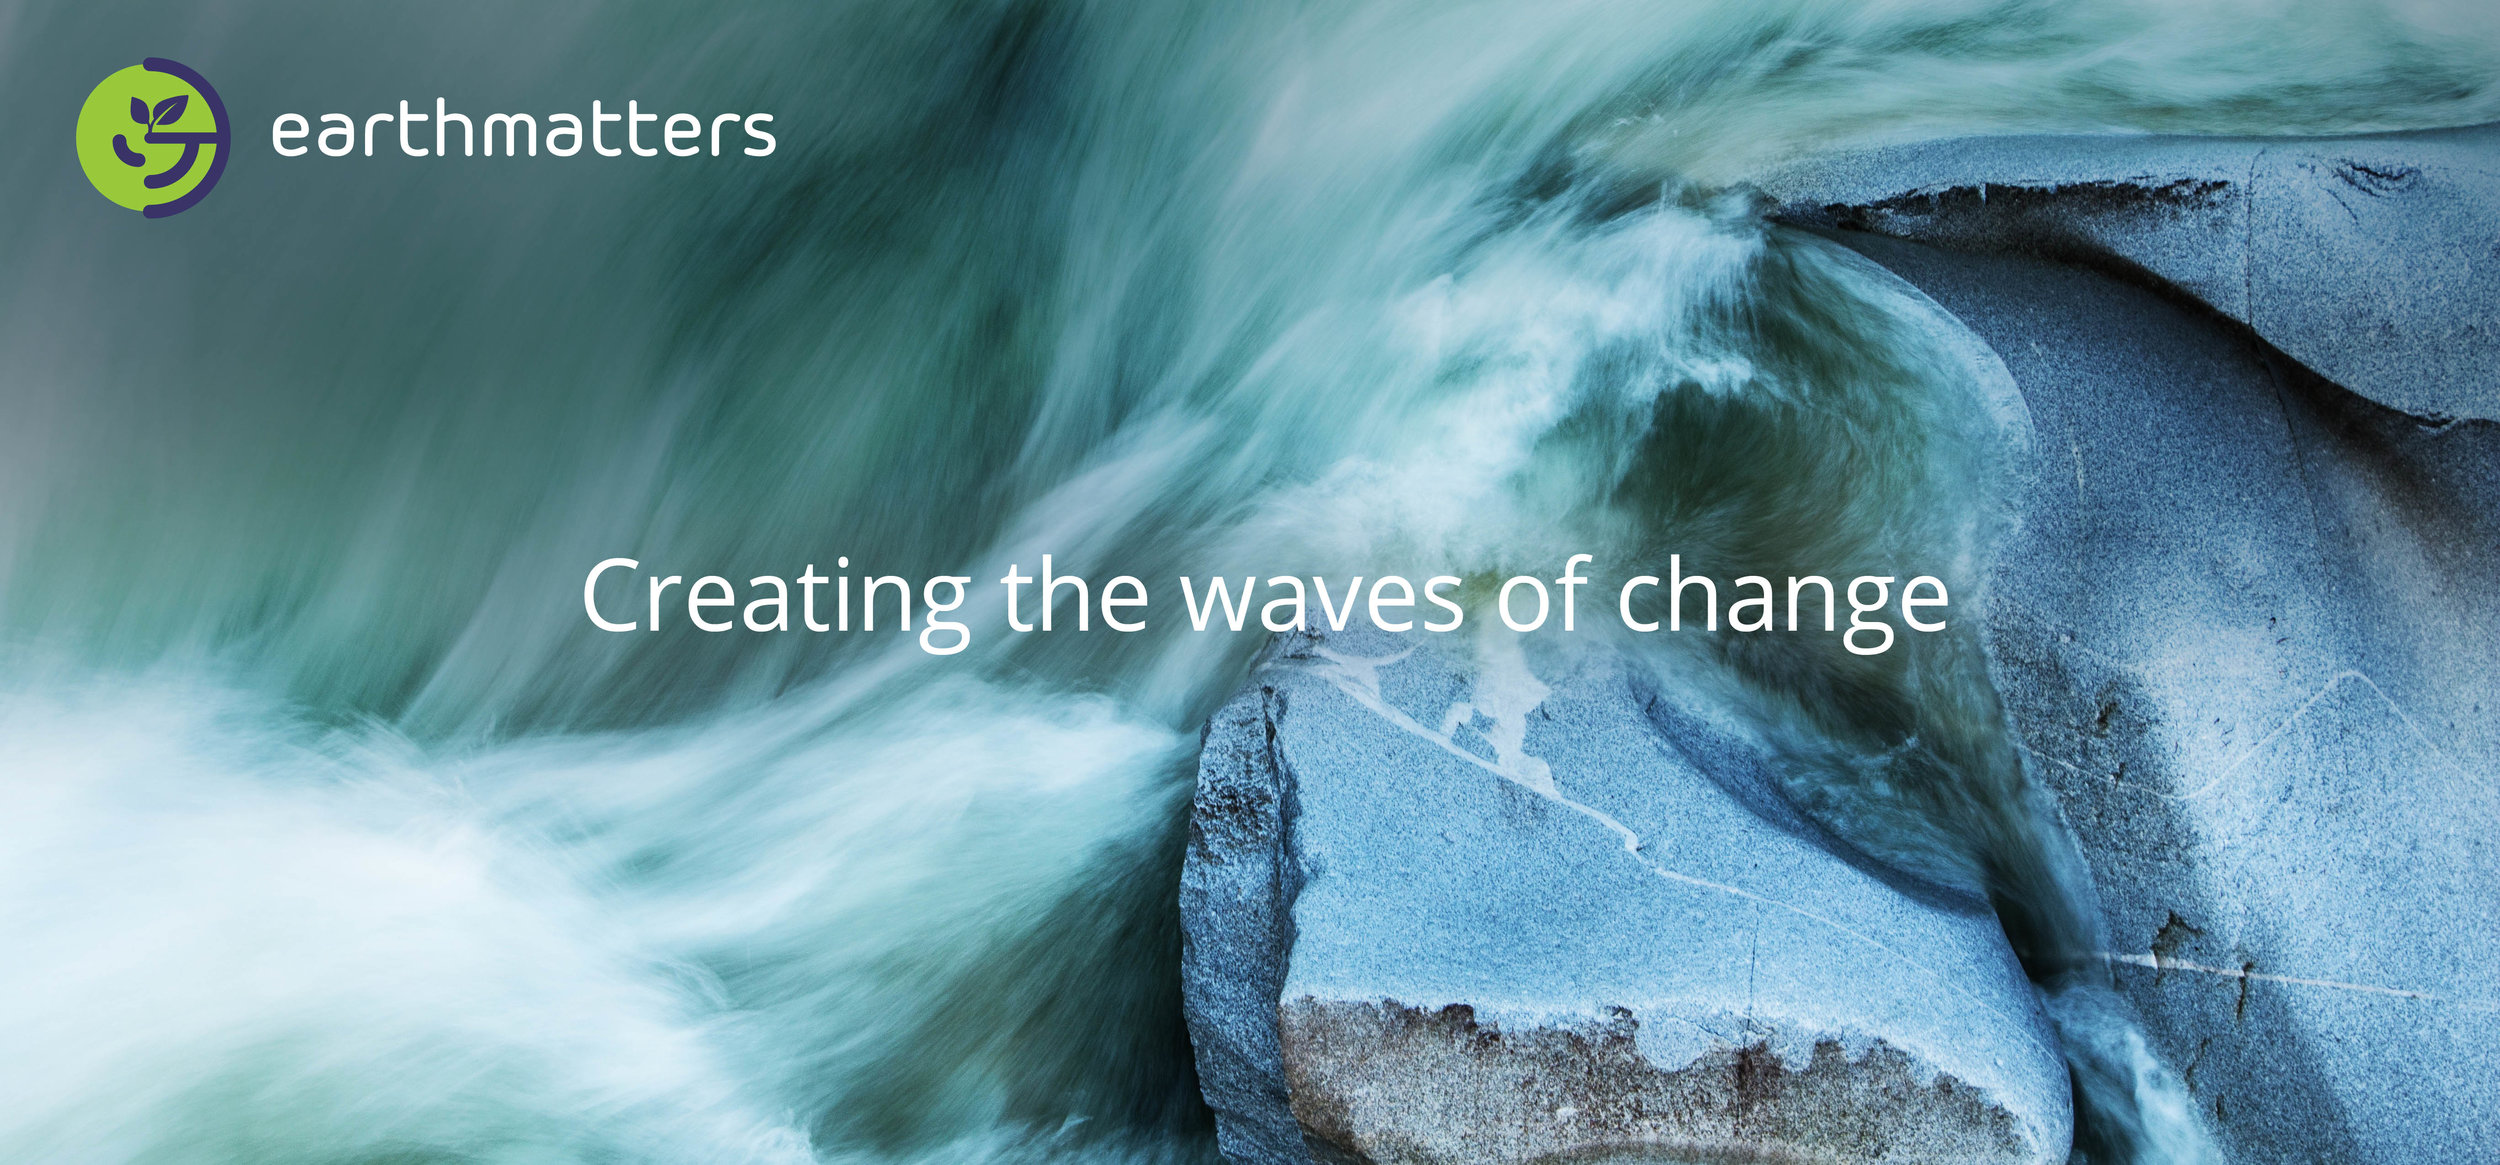 It was a great privilege to present our first  Creating the Waves of Change  workshop in Peterborough on 5th June - World Environment Day, no less. Thanks to those entrepreneurs who attended, making up a diverse and enthusiastic audience.